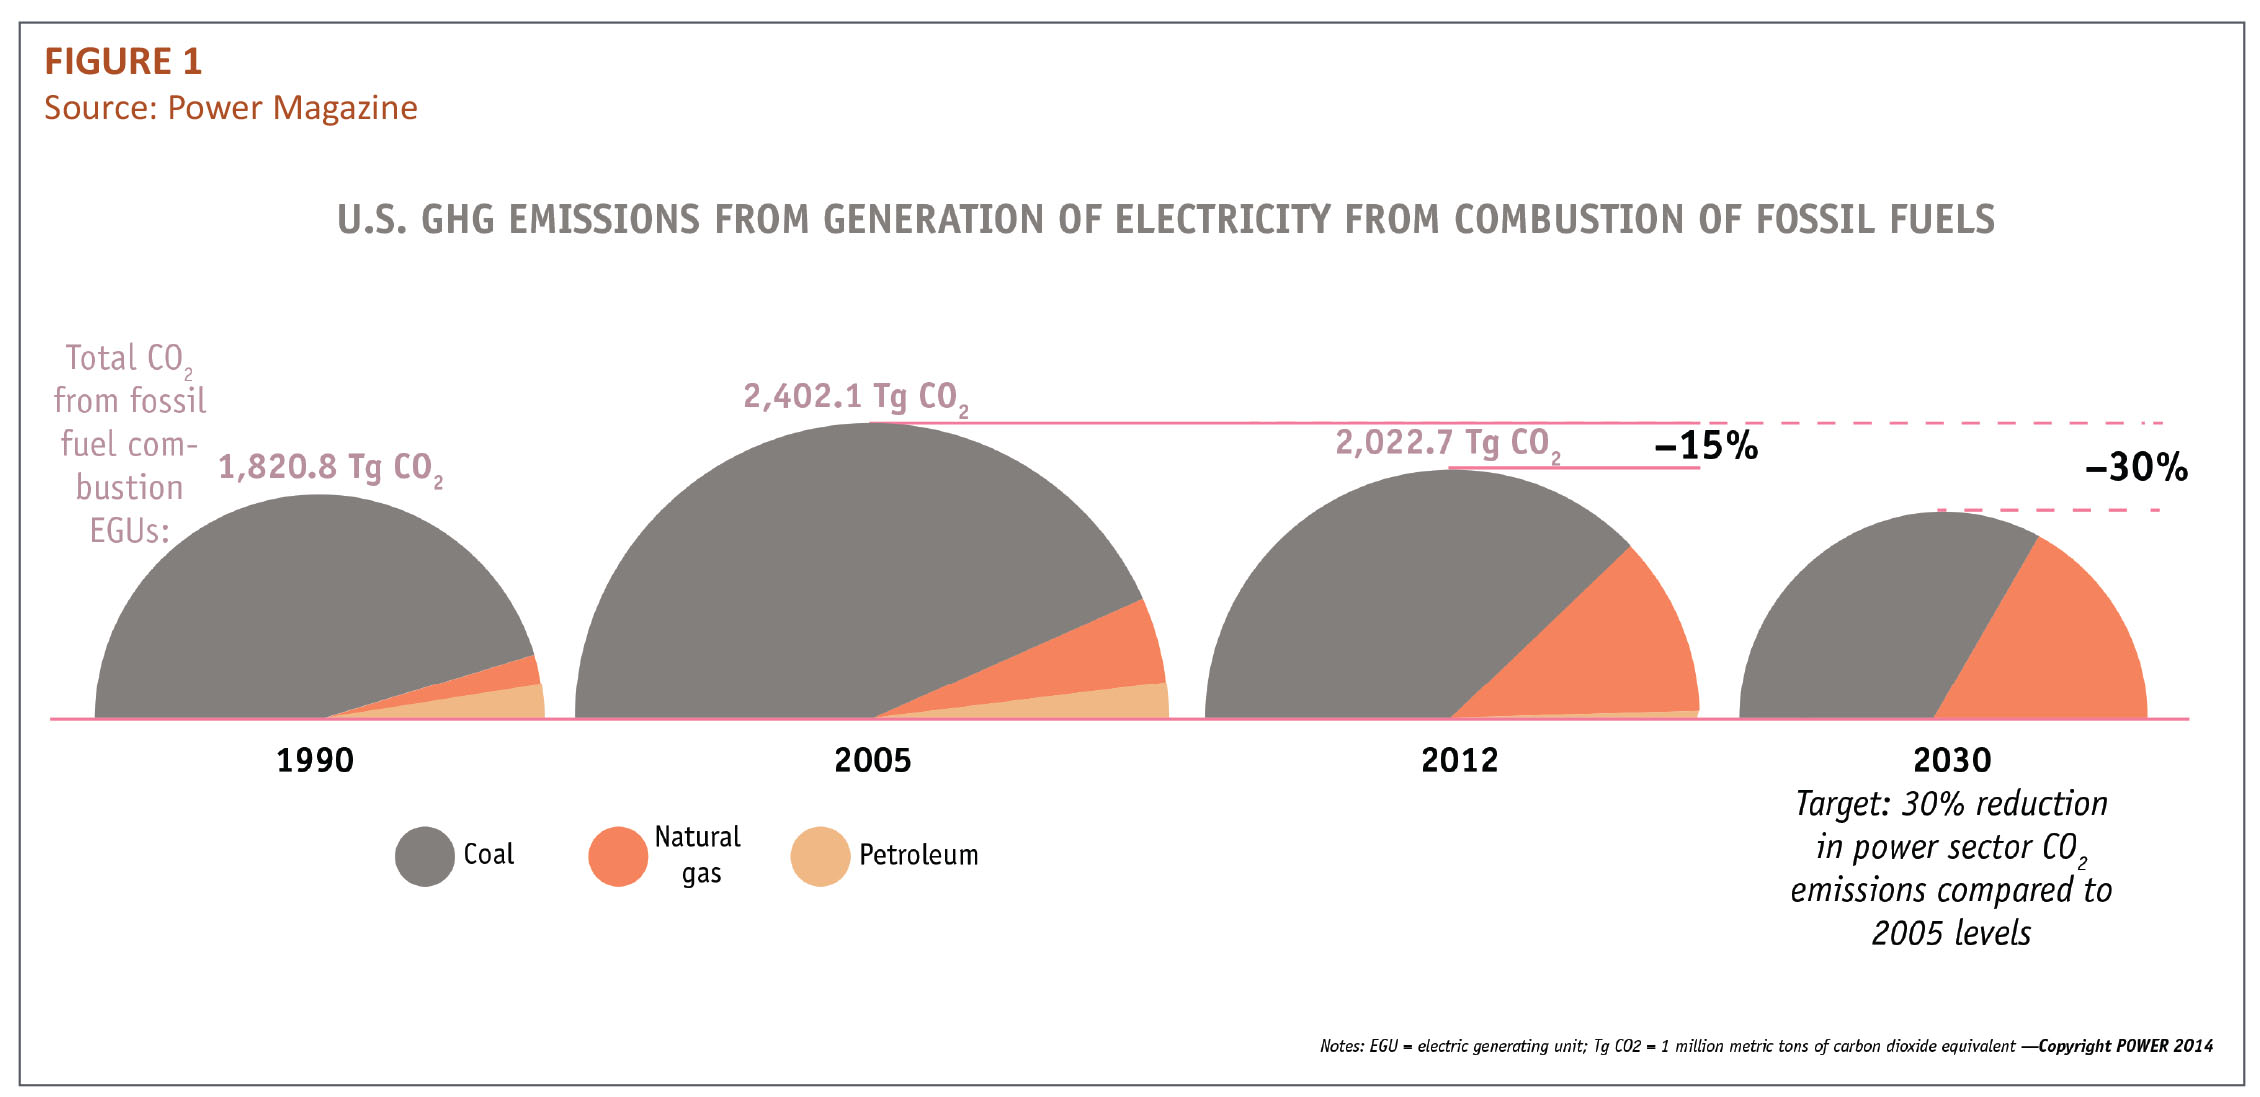 US GHG Emissions from Generation of Electricity from  Combustion of Fossil Fuels